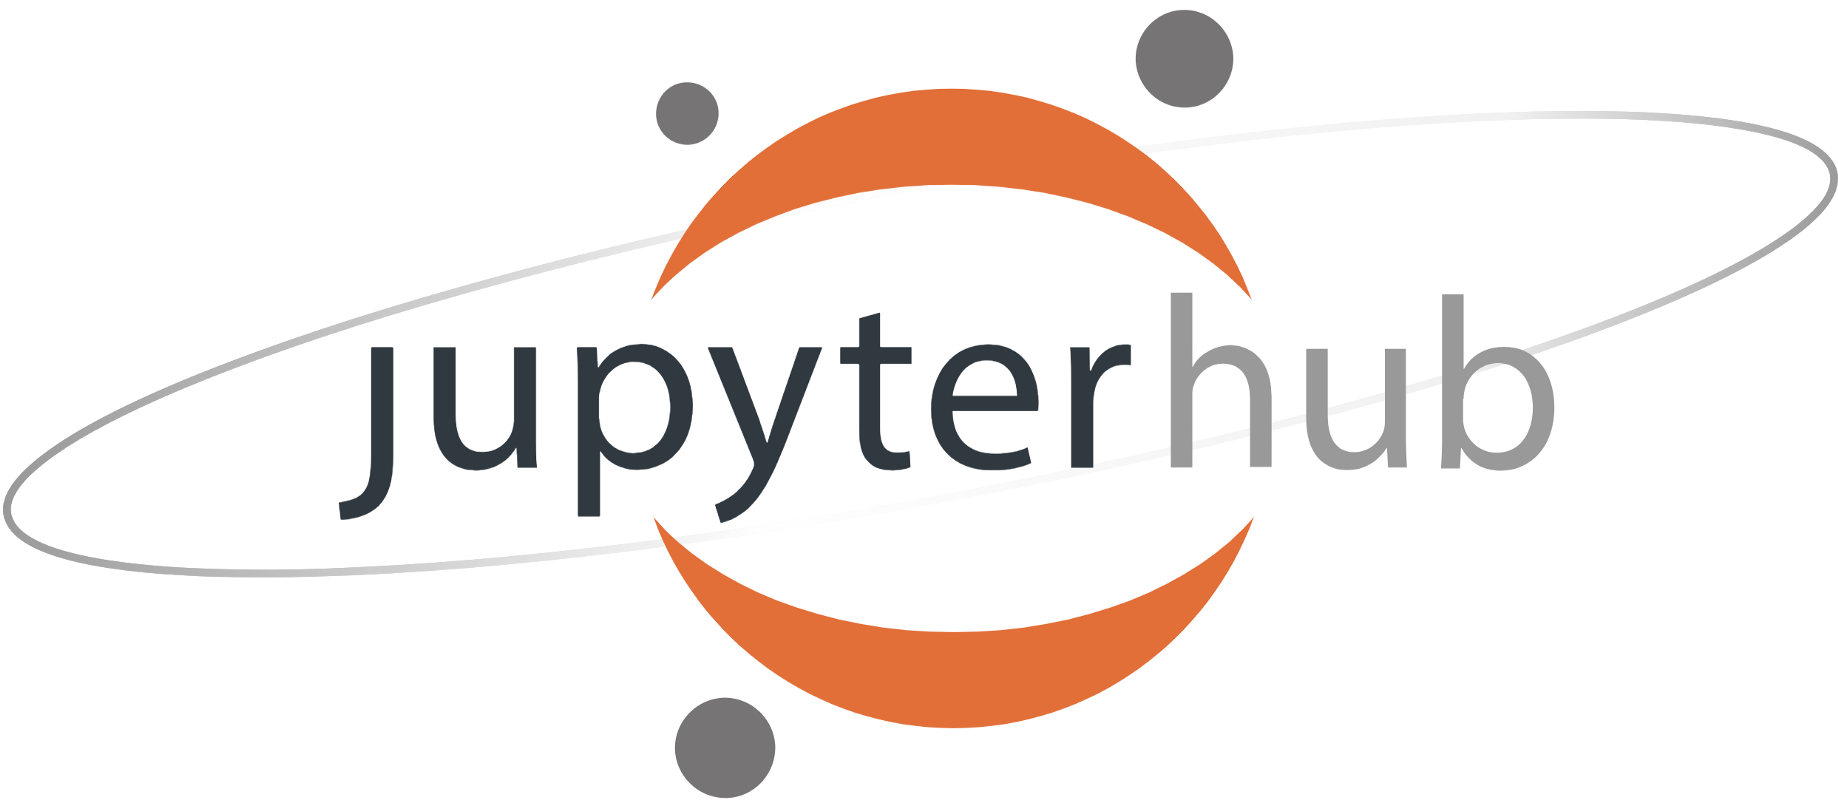 Jupyter Hub for Data Science team — Weekend of a Data Scientist